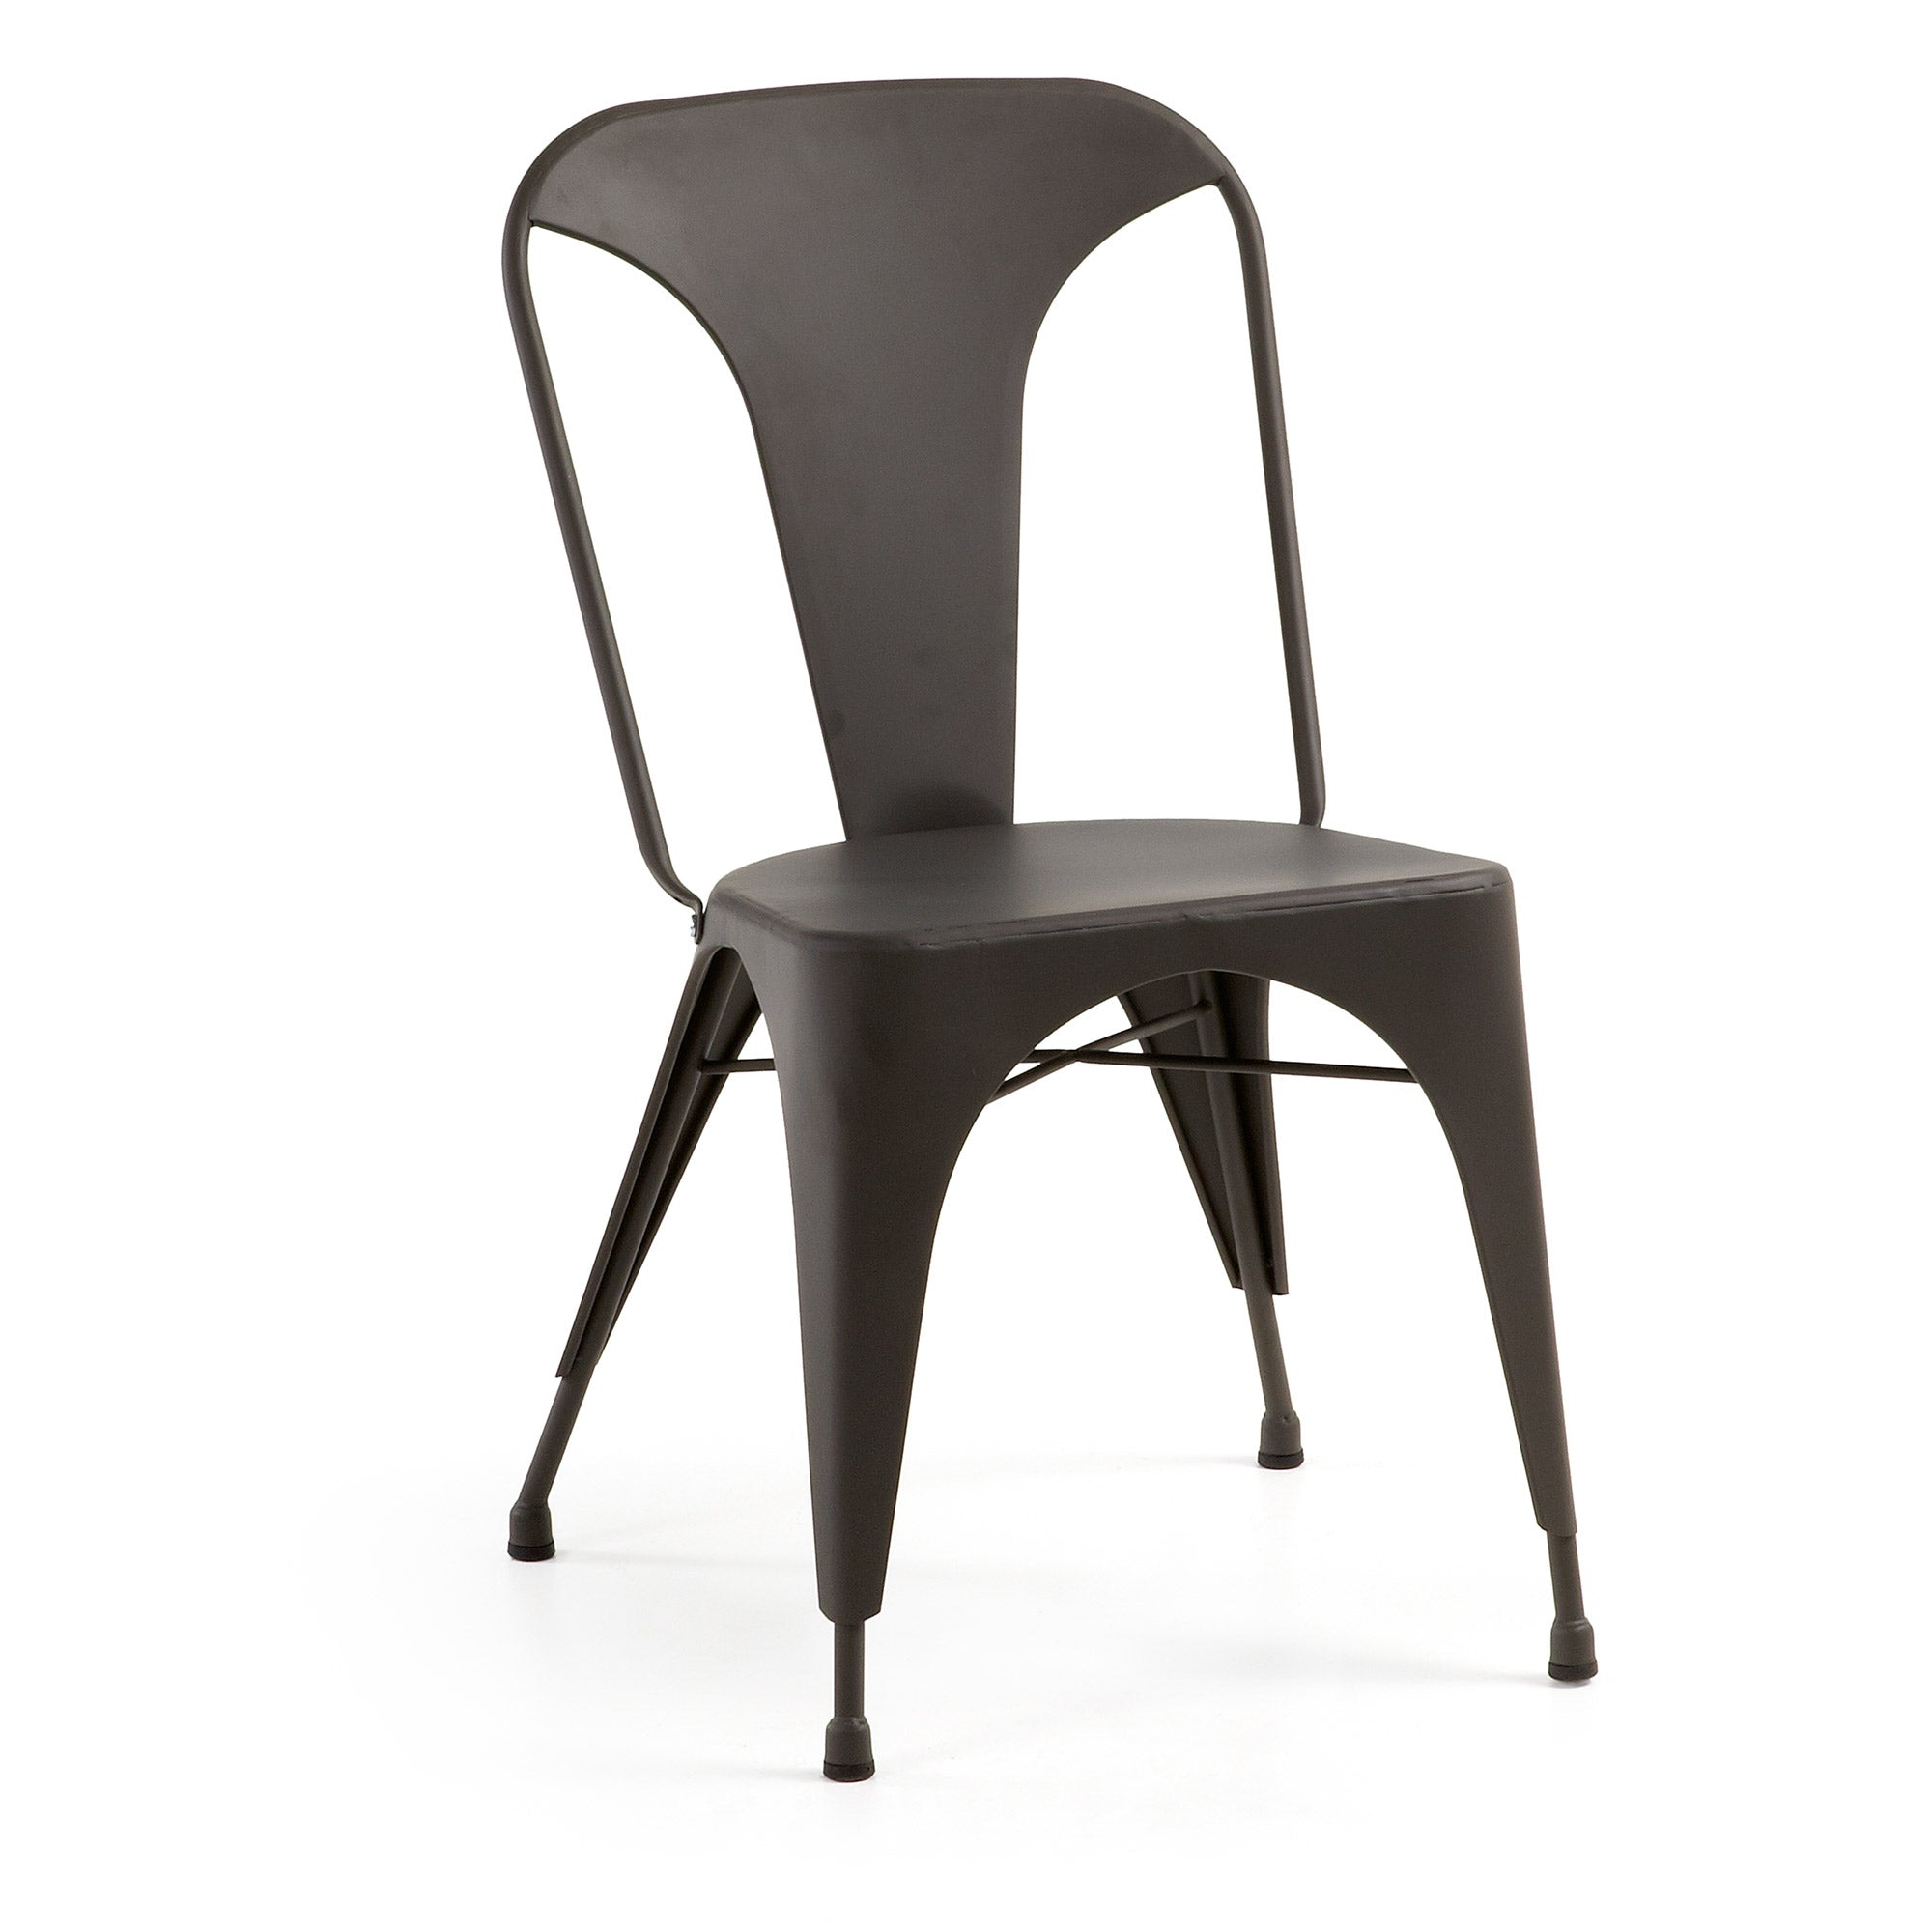 Georgi Chair - Metallic Graphite - Home-Buy Interiors